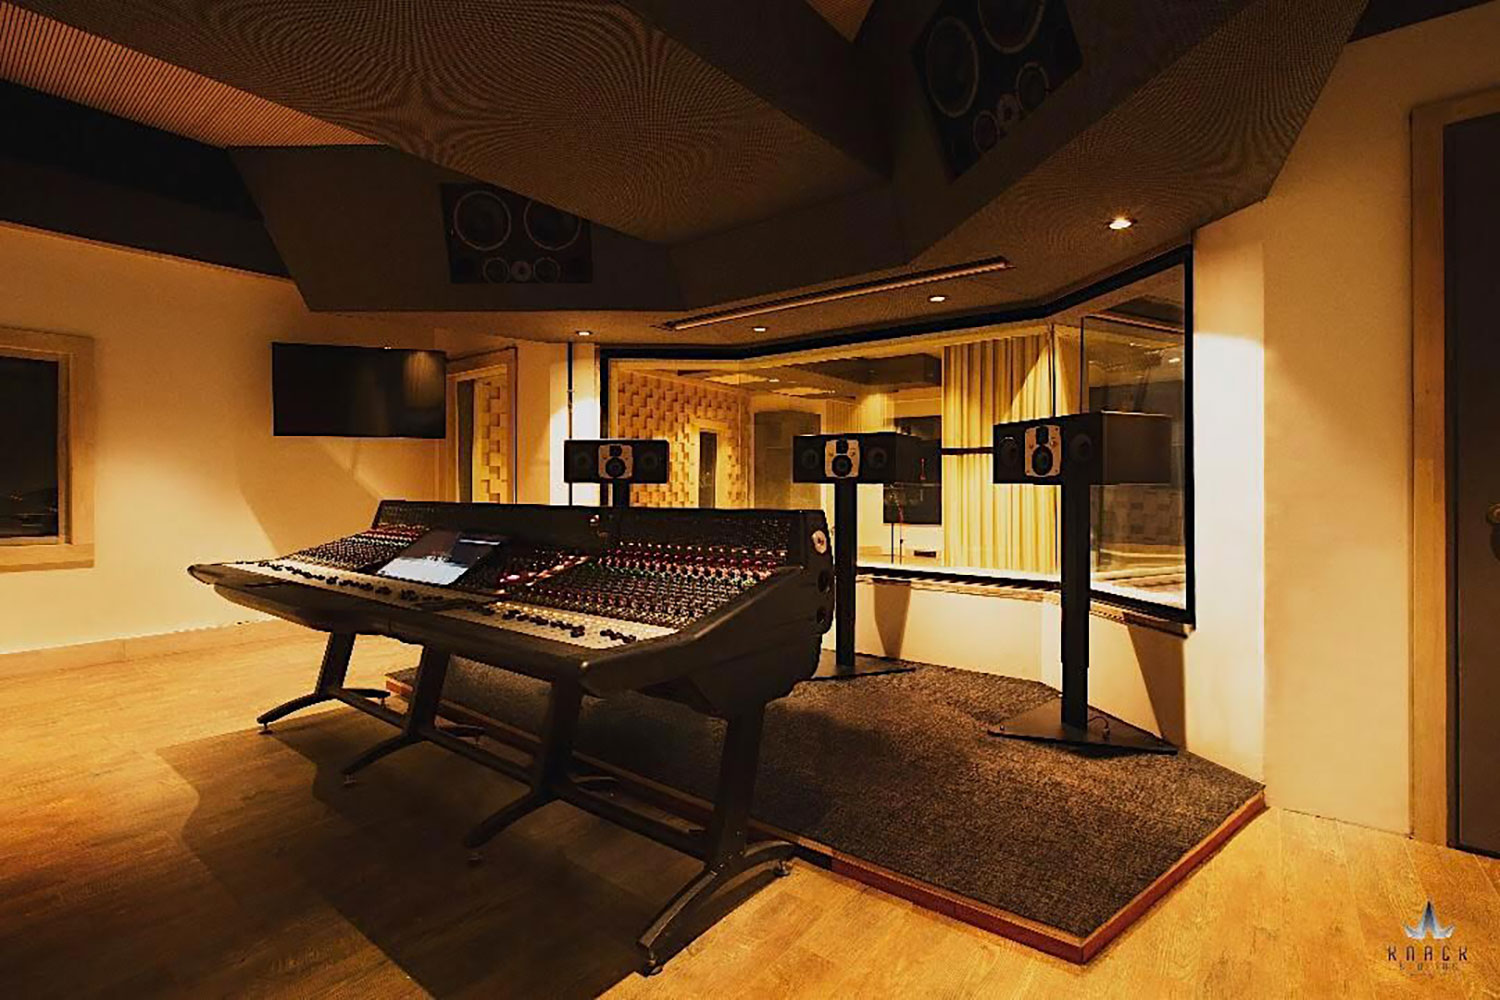 Envisioned as a major resource for India's thriving Bollywood film industry, KNACK Studios is the first world-class post-production complex in Eastern India.  To provide clients with the ultimate facility design, the KNACK executive group retained global architectural/acoustic consultants, WSDG Walters-Storyk Design Group. Control Room 1, side view